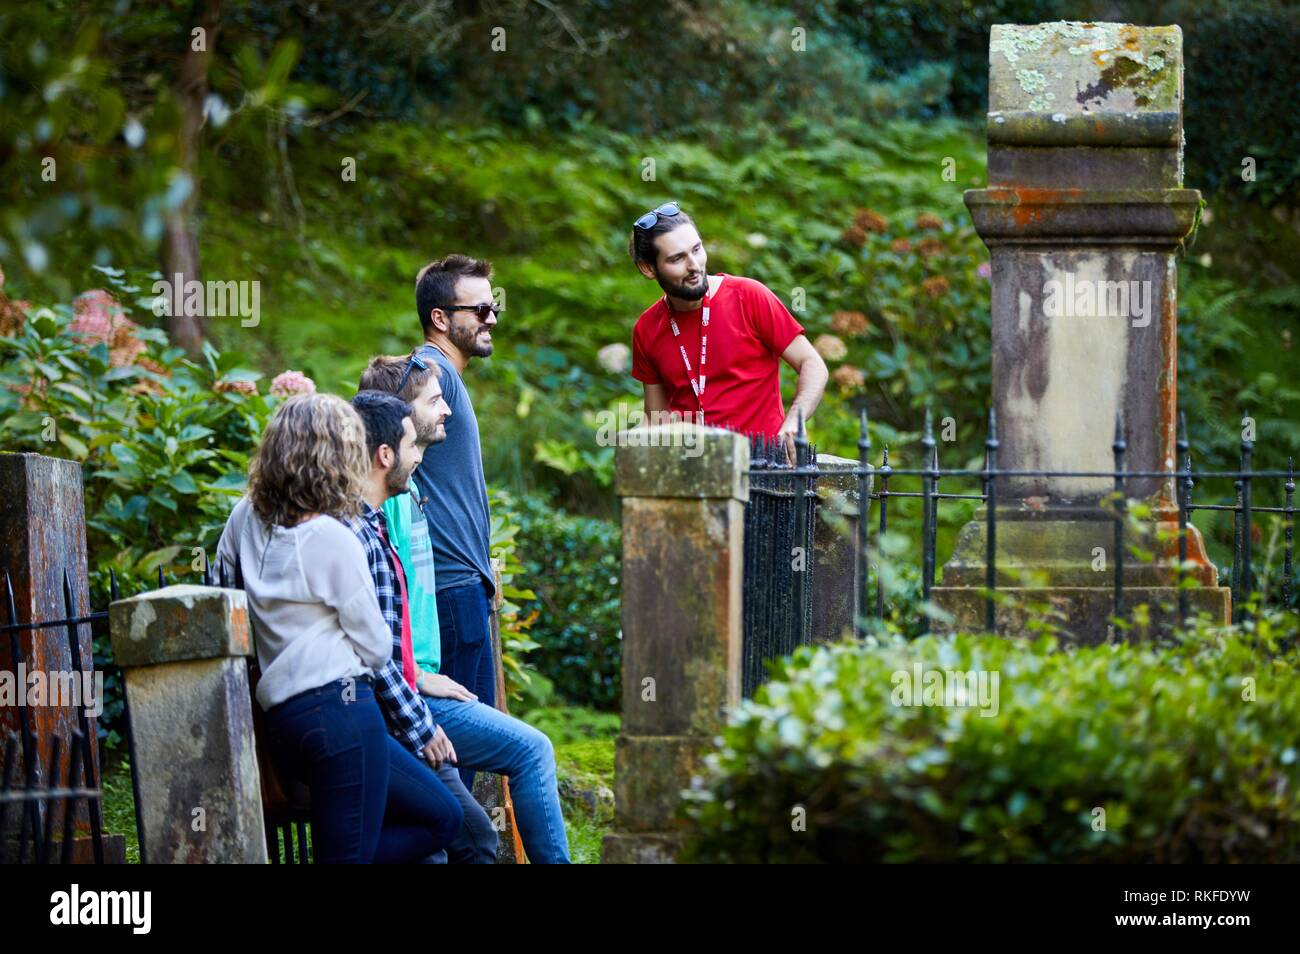 Group of tourists and guide making a tour of the city, Climb to Mount Urgull, Cemetery of the English, Donostia, San Sebastian, Gipuzkoa, Basque - Stock Image